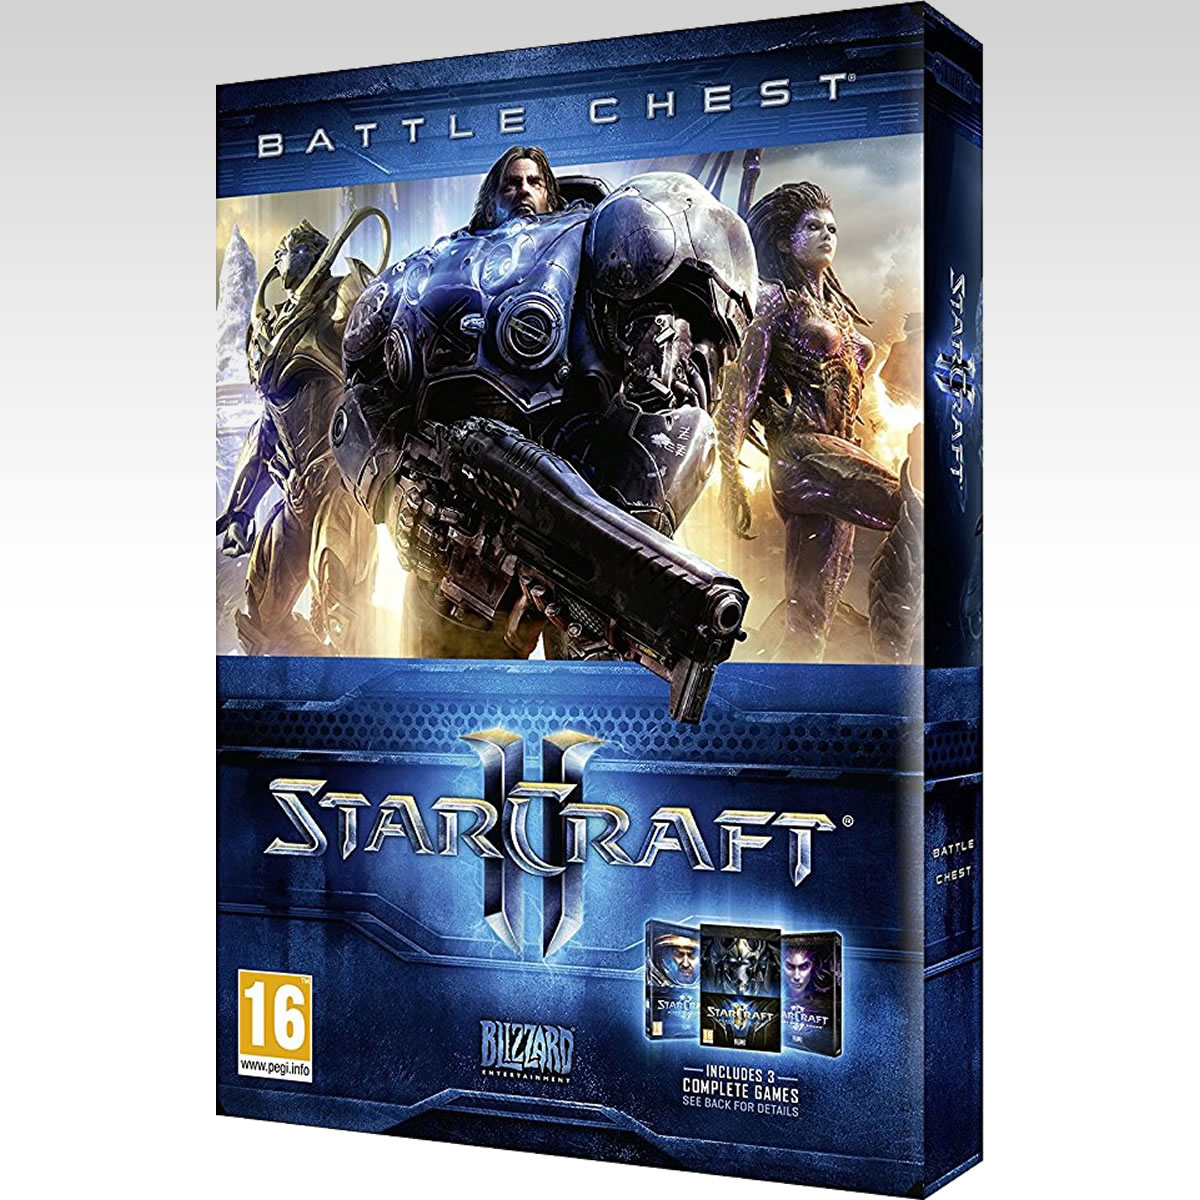 Starcraft battle chest digital download